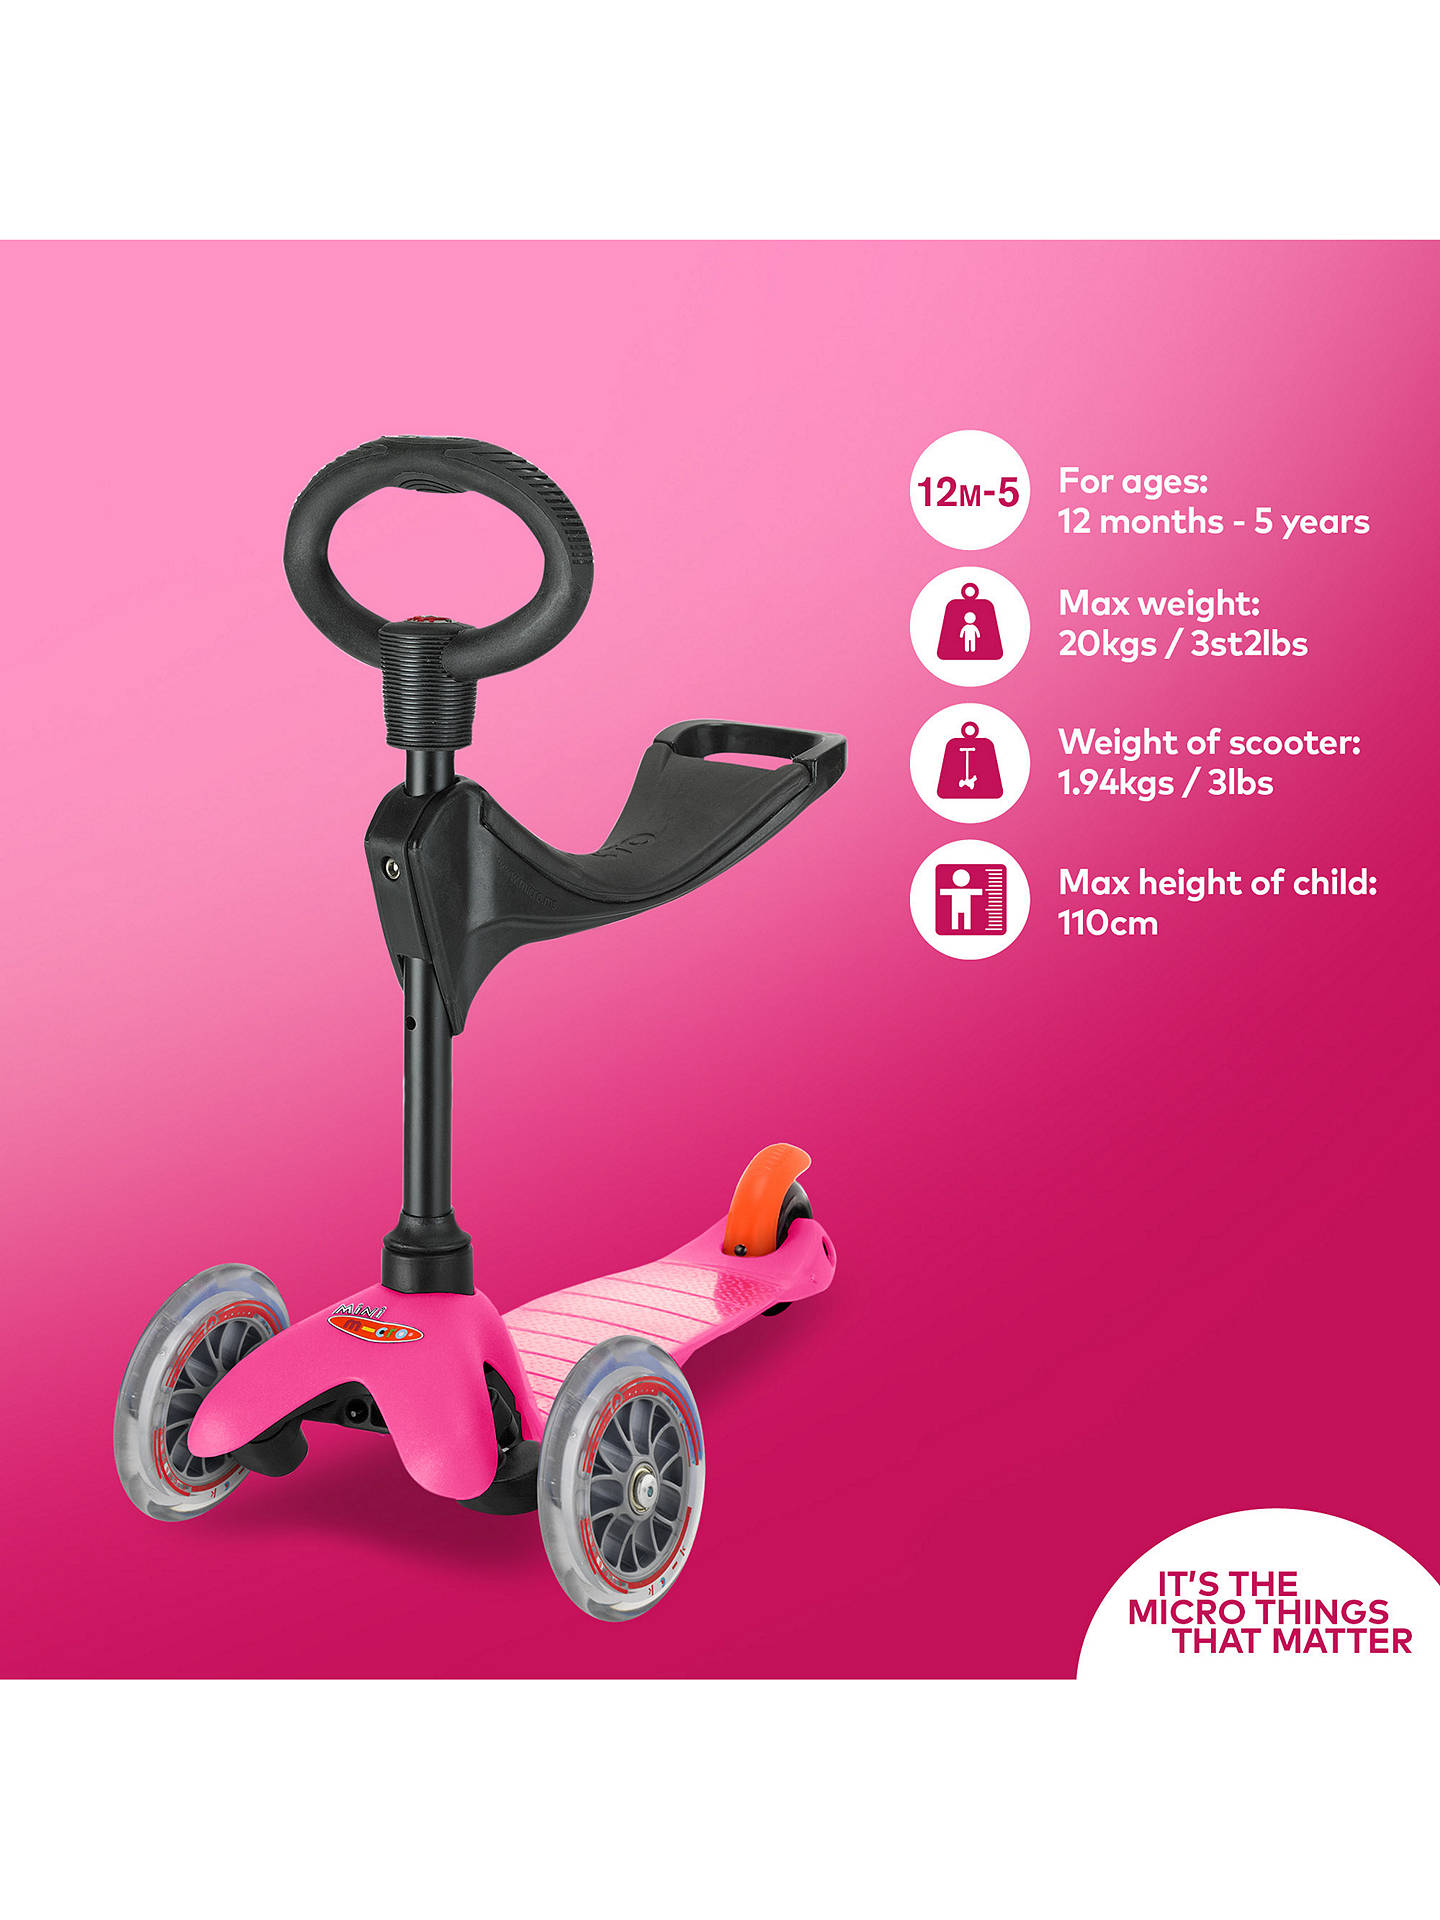 Buy Mini Micro 3-in-1 Scooter with Seat and O-Bar Handle, 1-5 years, Pink Online at johnlewis.com